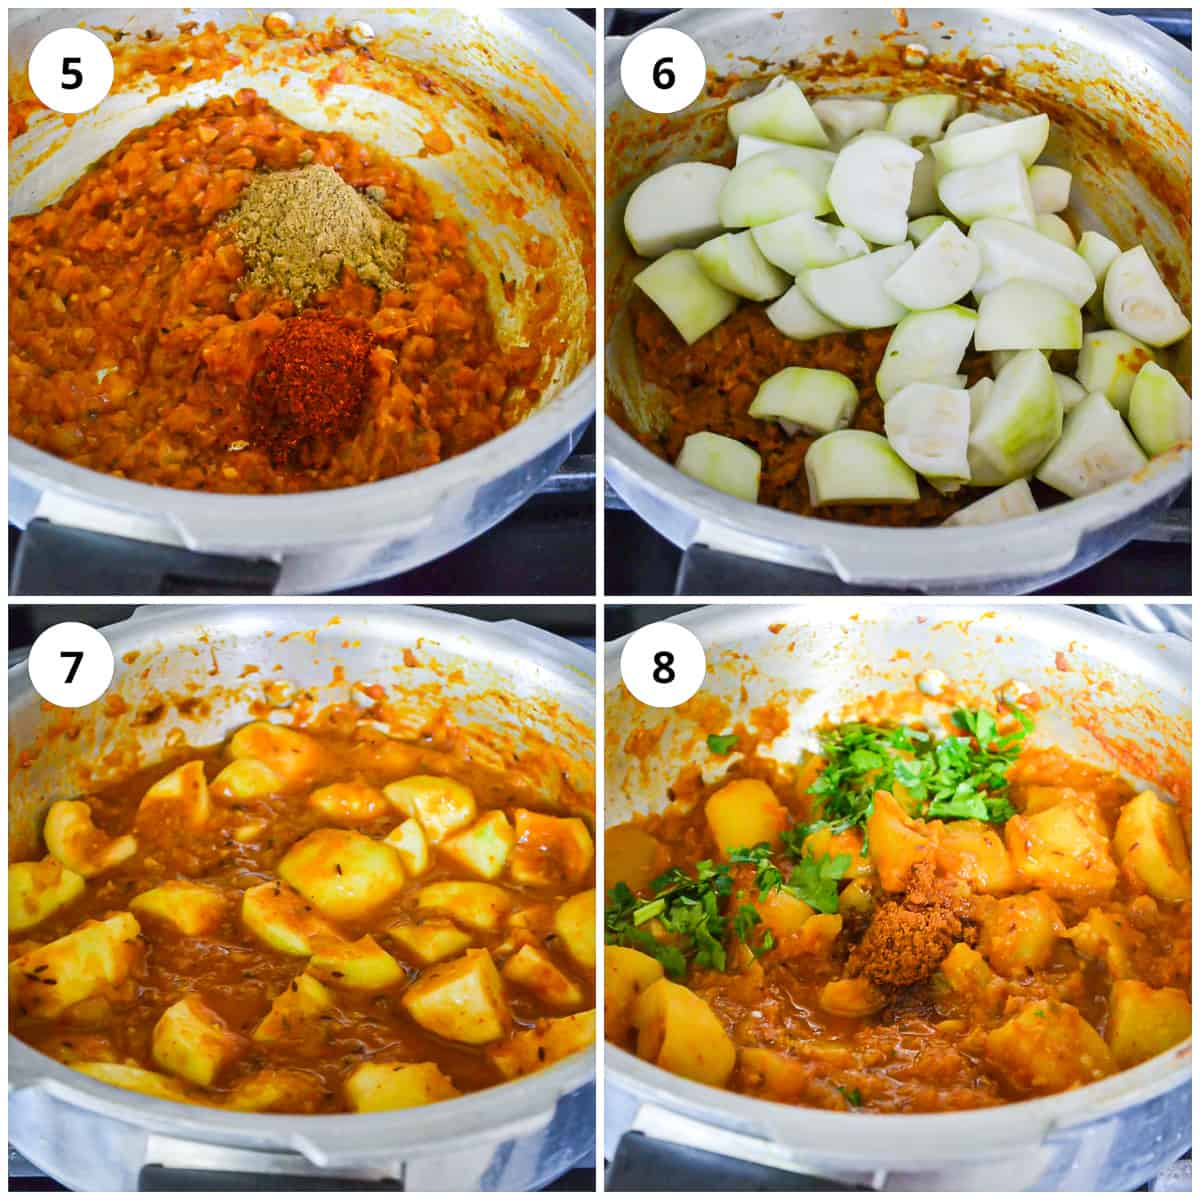 Four photos to show how to cook the curry ready to serve